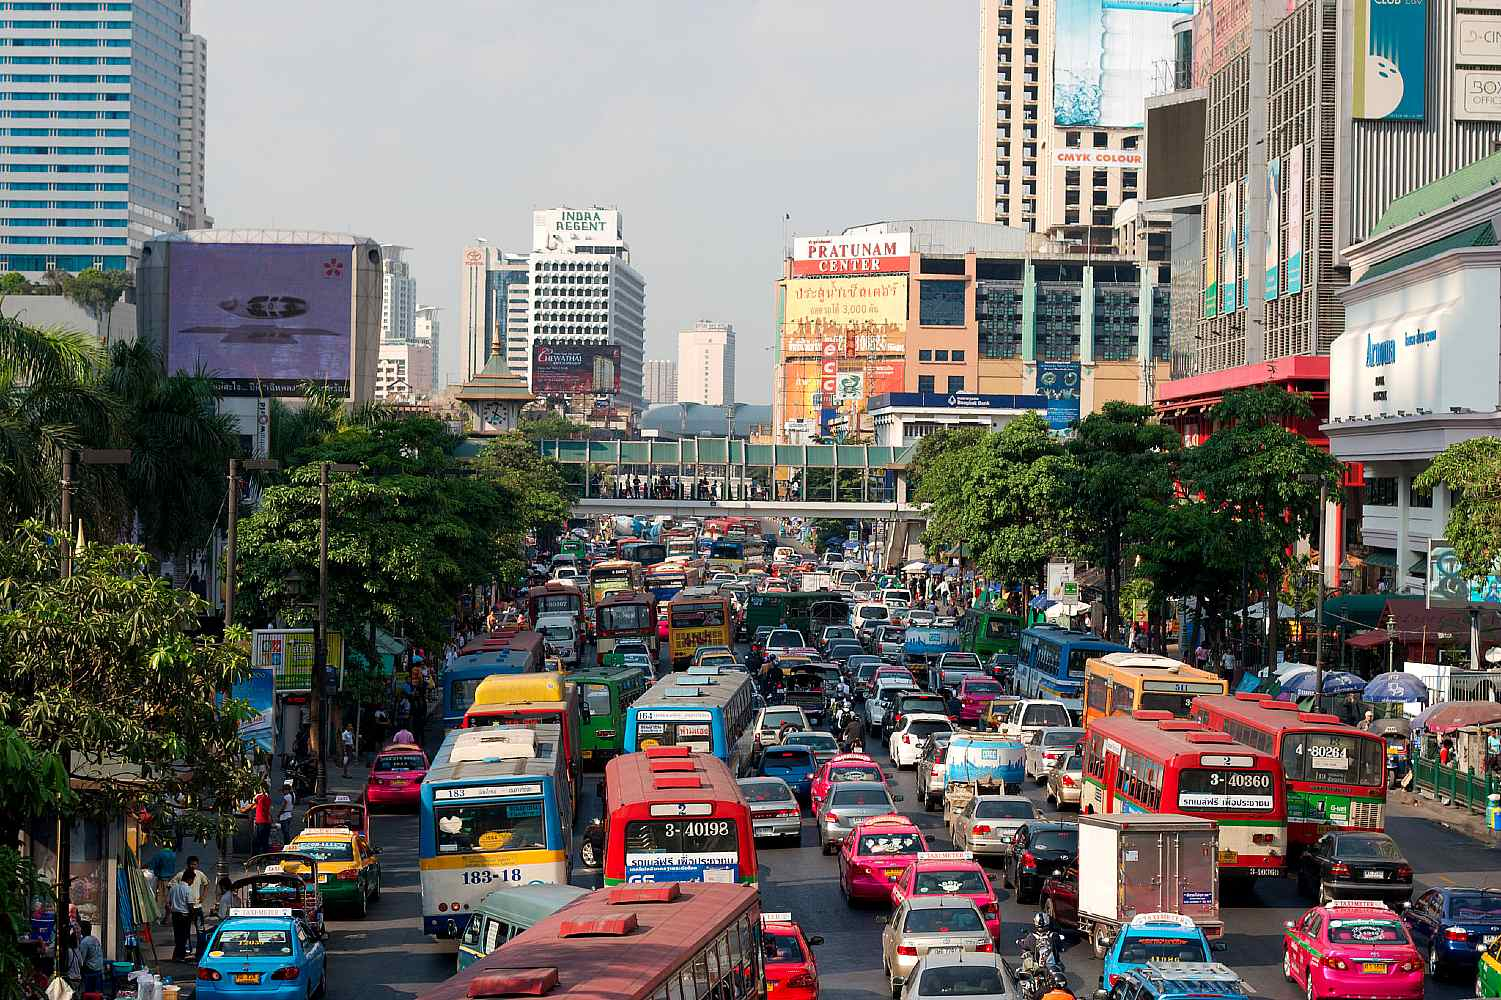 Cars, tuk tuk's and buses are in traffic jam